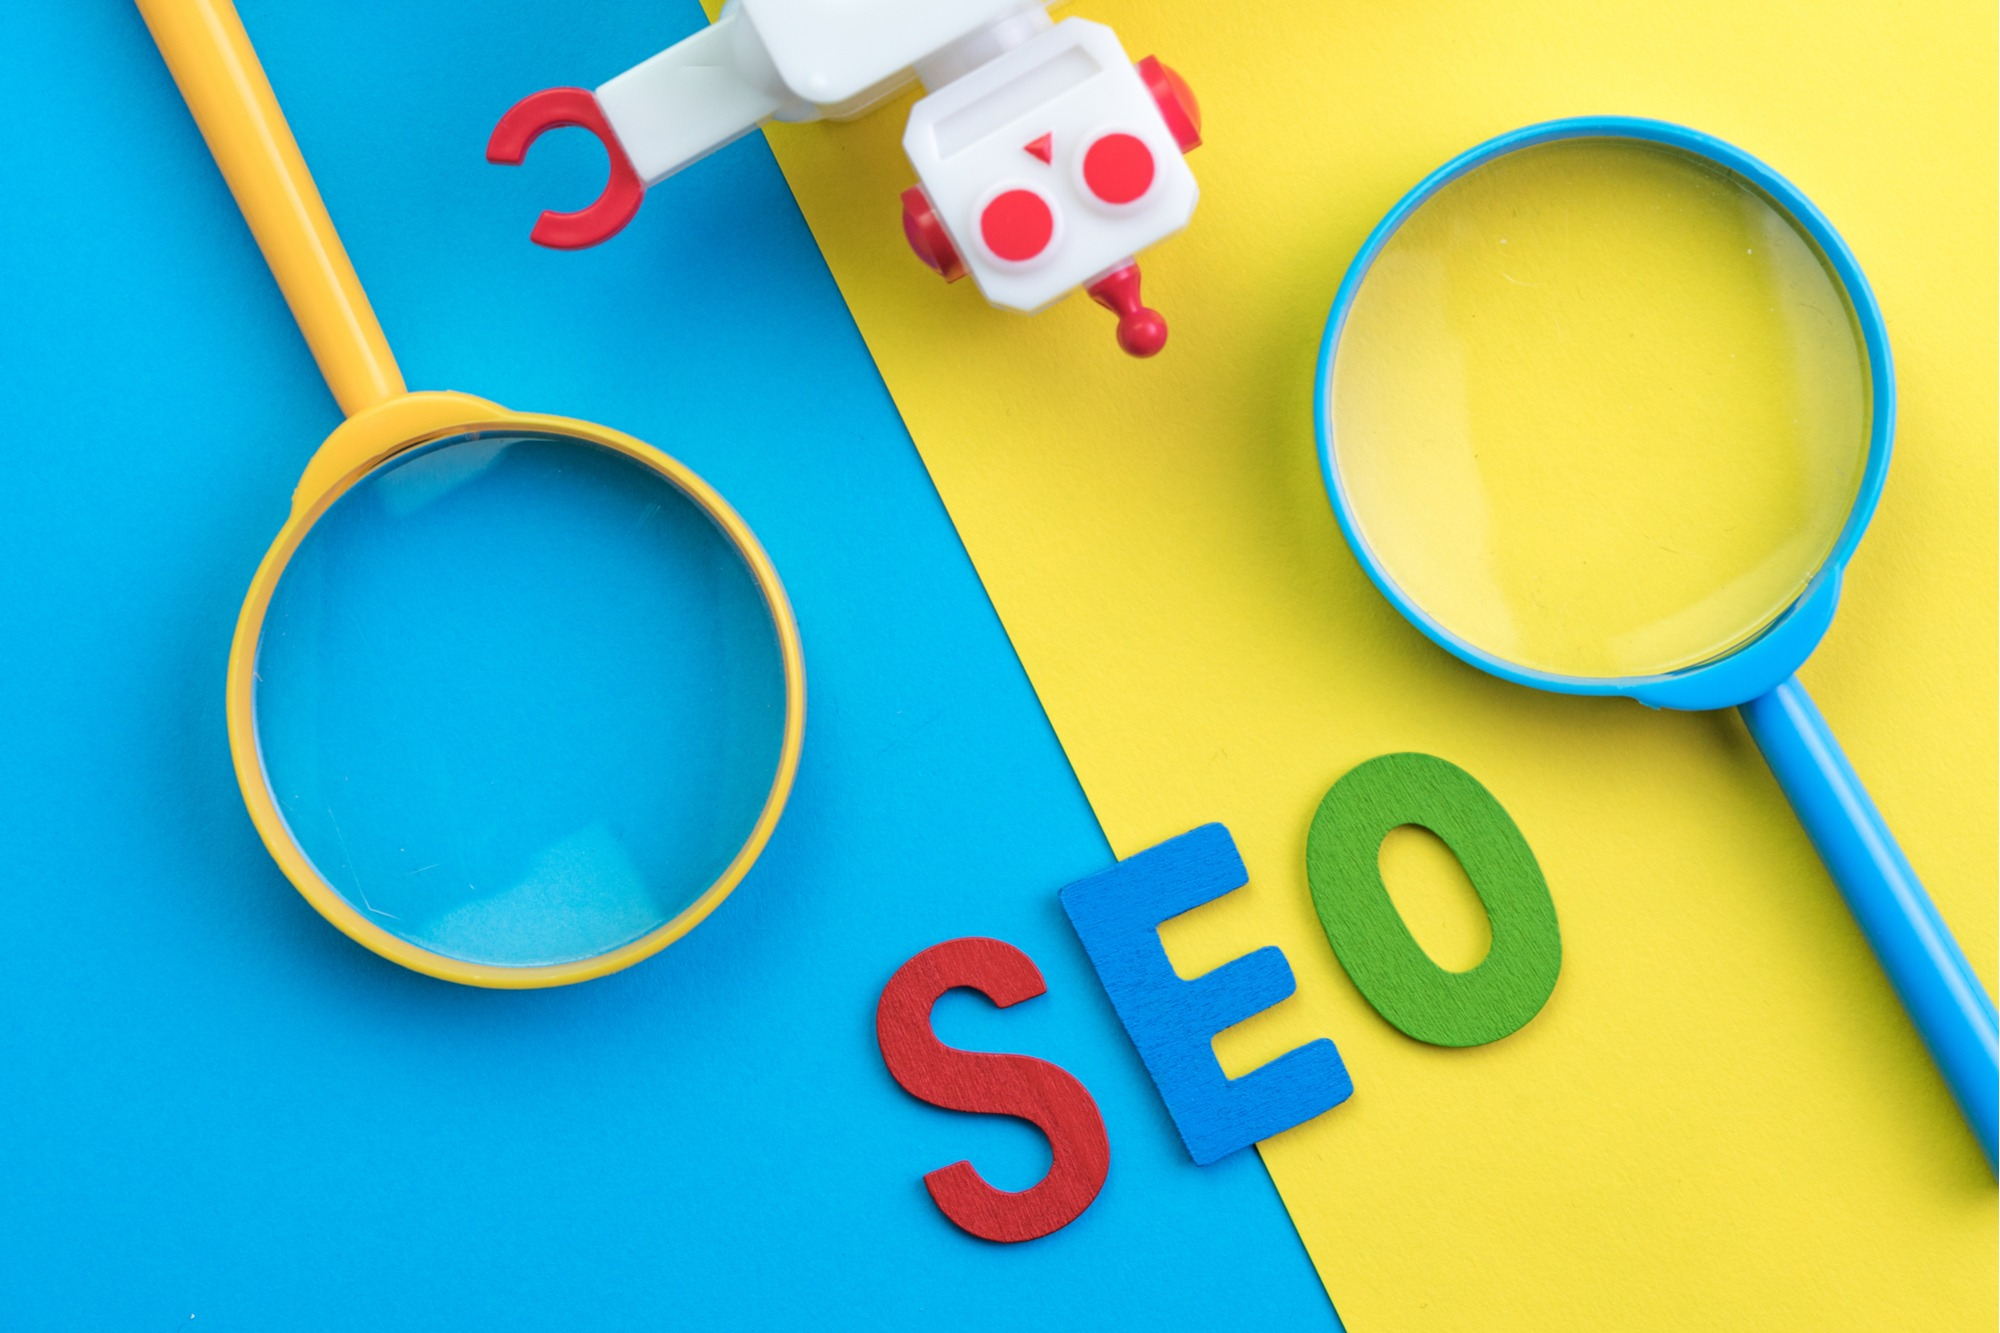 best way to improve seo rankings 2019